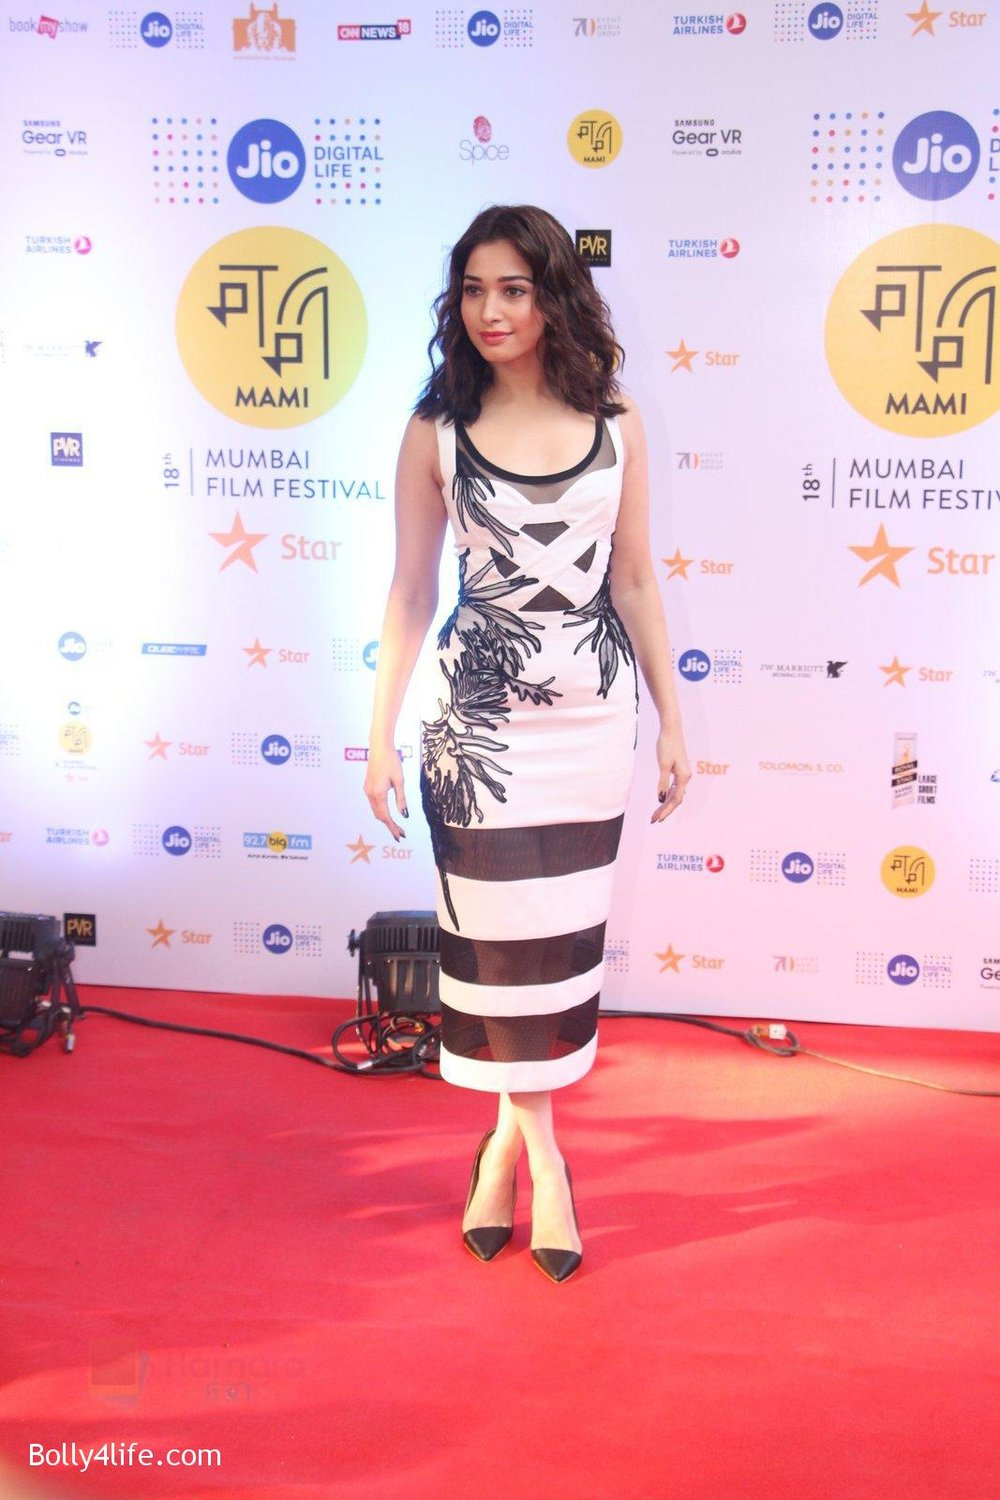 Tamannaah-Bhatia-at-MAMI-Film-Festival-2016-Day-2-on-22nd-Oct-2016-55.jpg